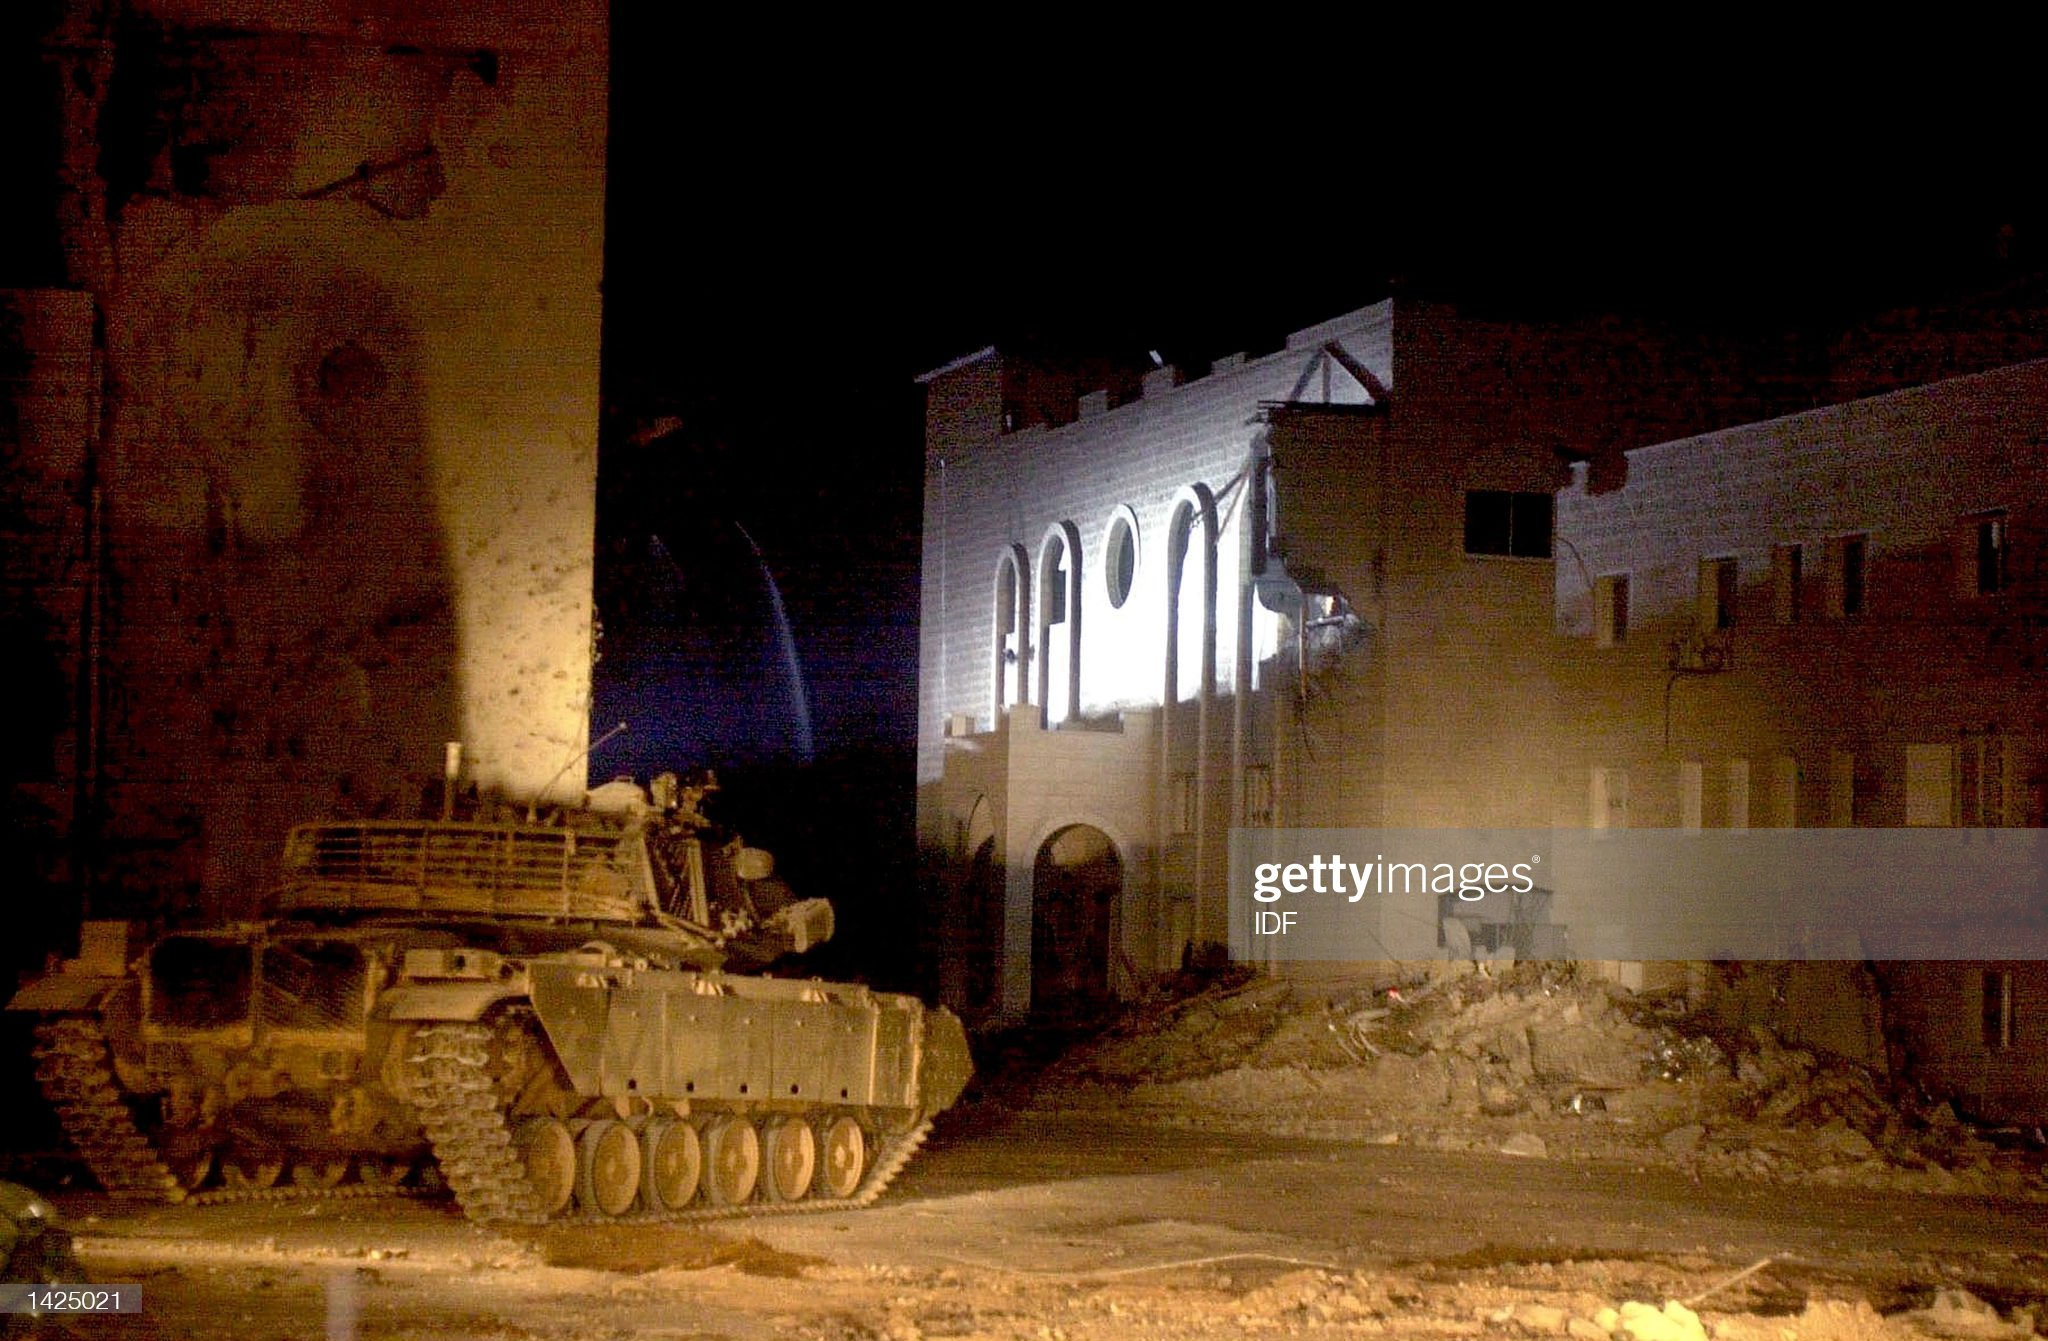 https://media.gettyimages.com/photos/in-this-picture-distributed-by-the-idf-an-israeli-tank-stands-guard-picture-id1425021?s=2048x2048